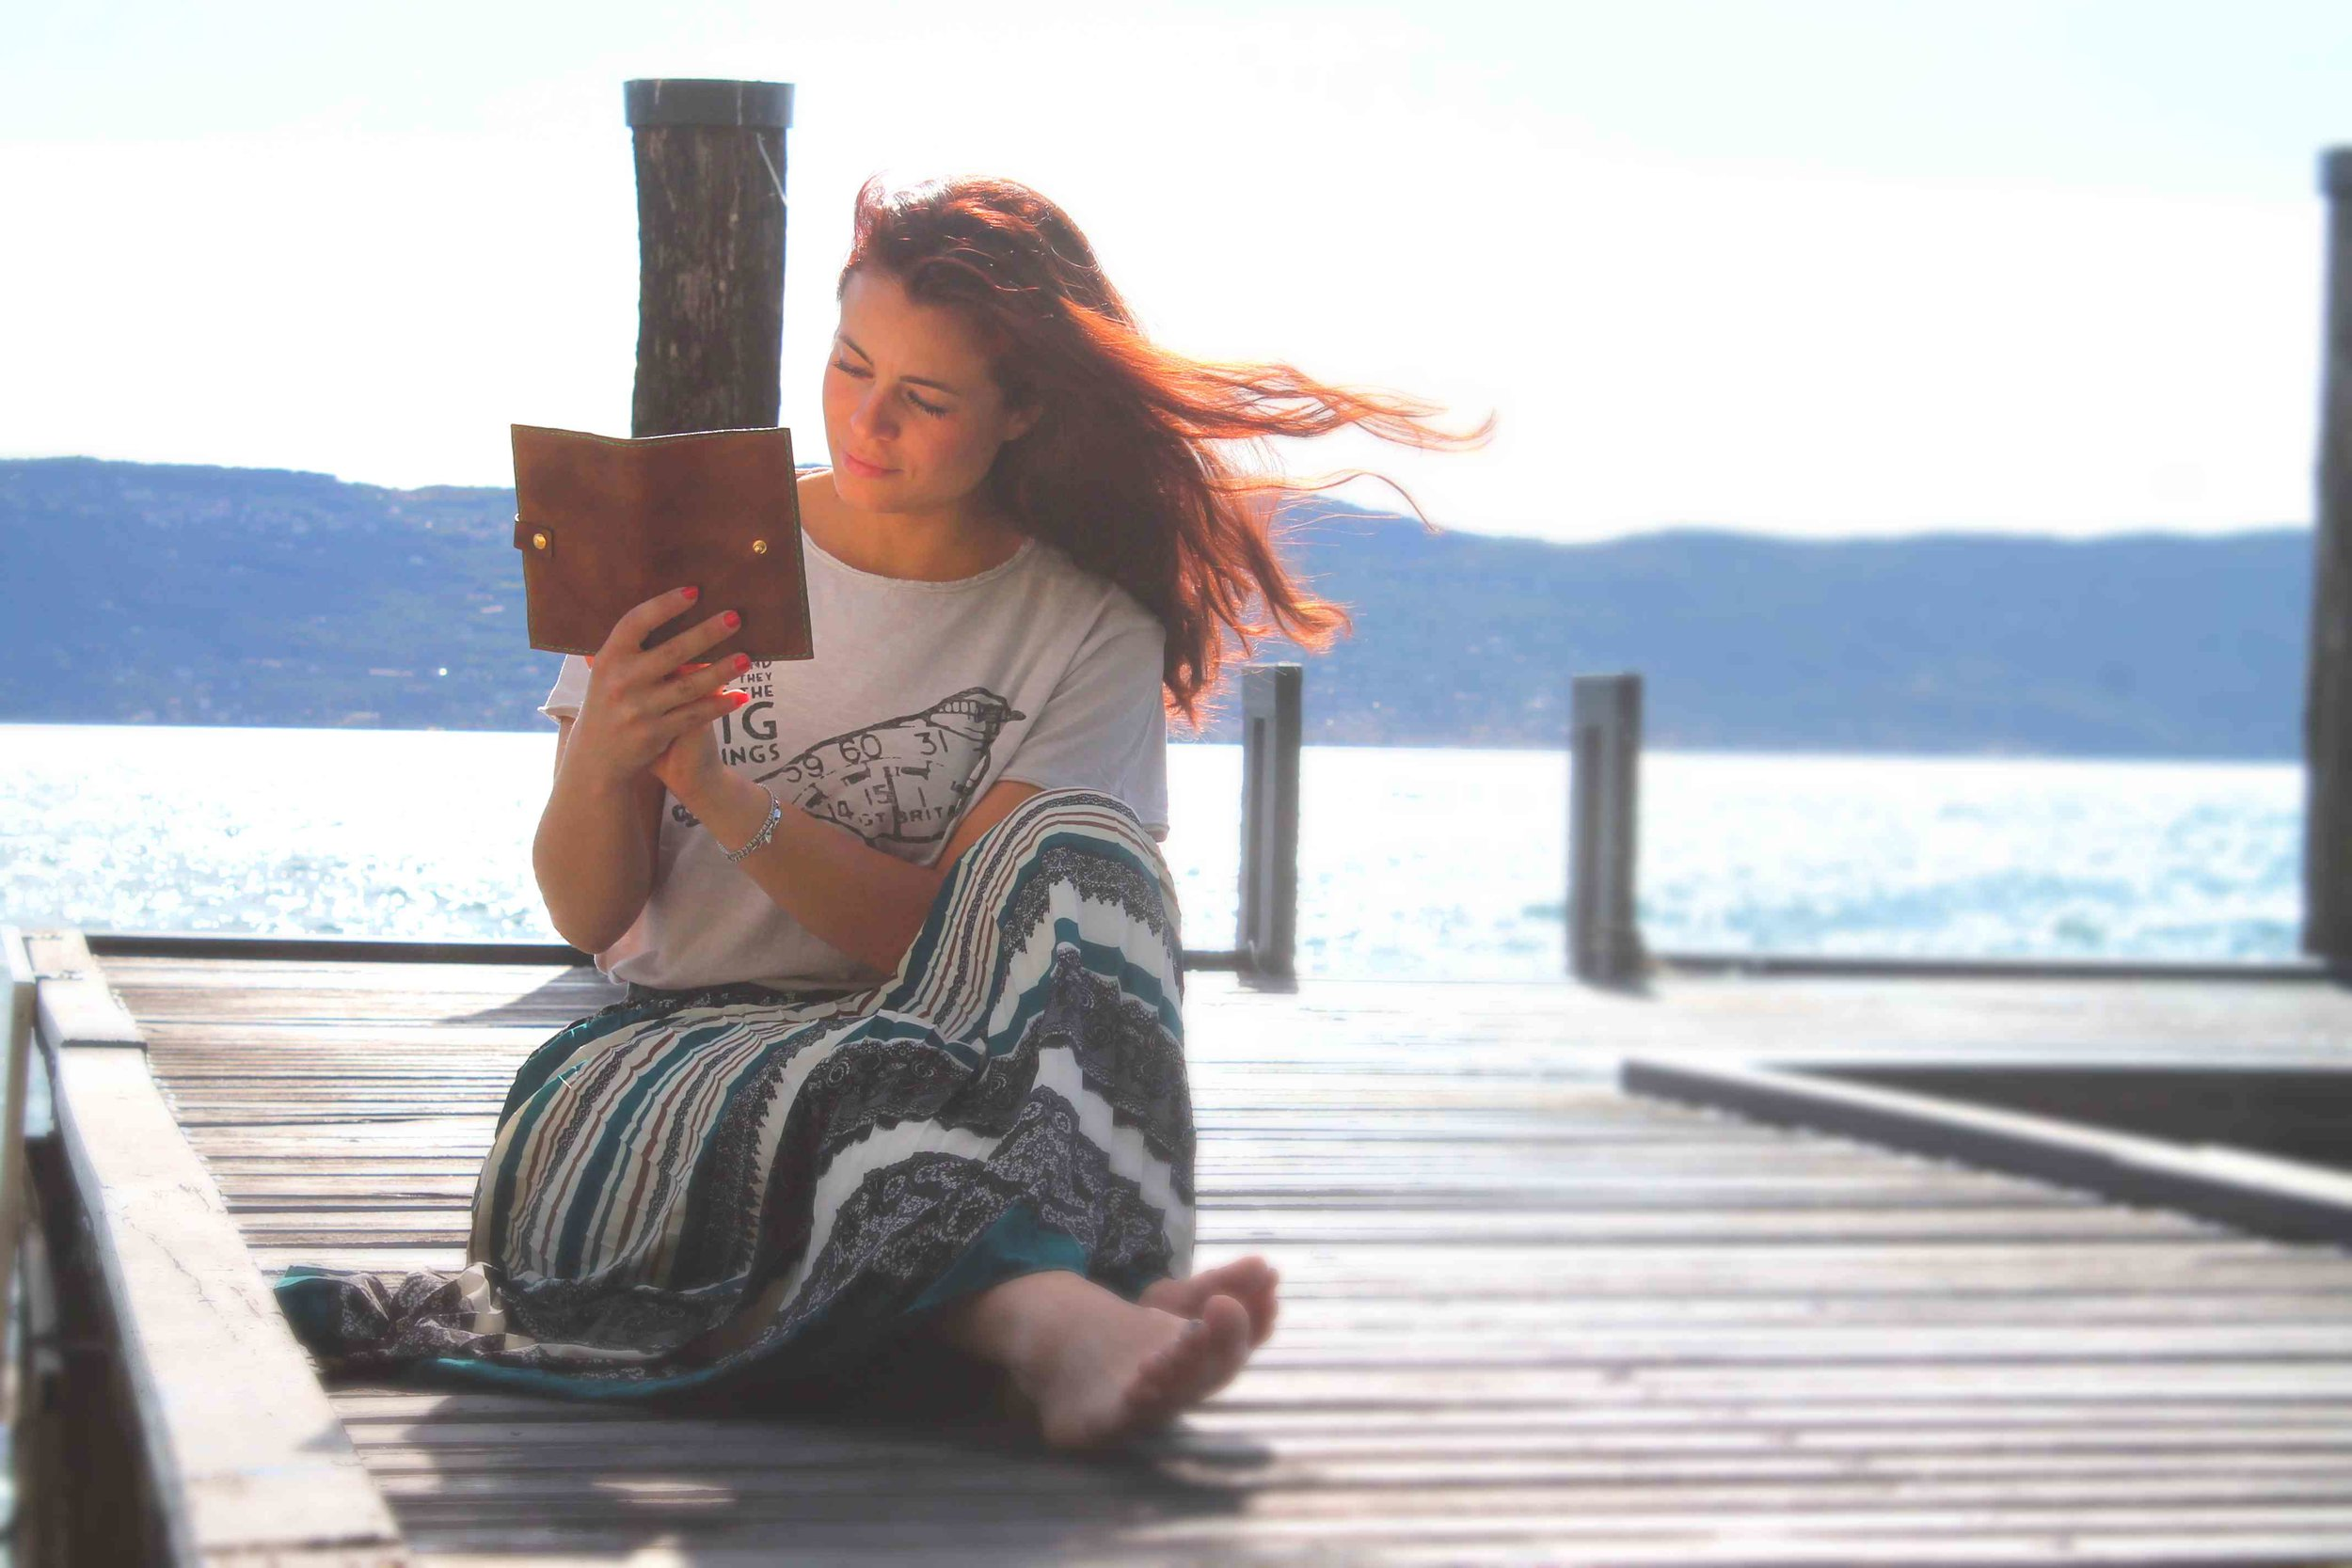 Summer 6 #statusquoio #leather #cuoio #lake #notebook #wave.jpg